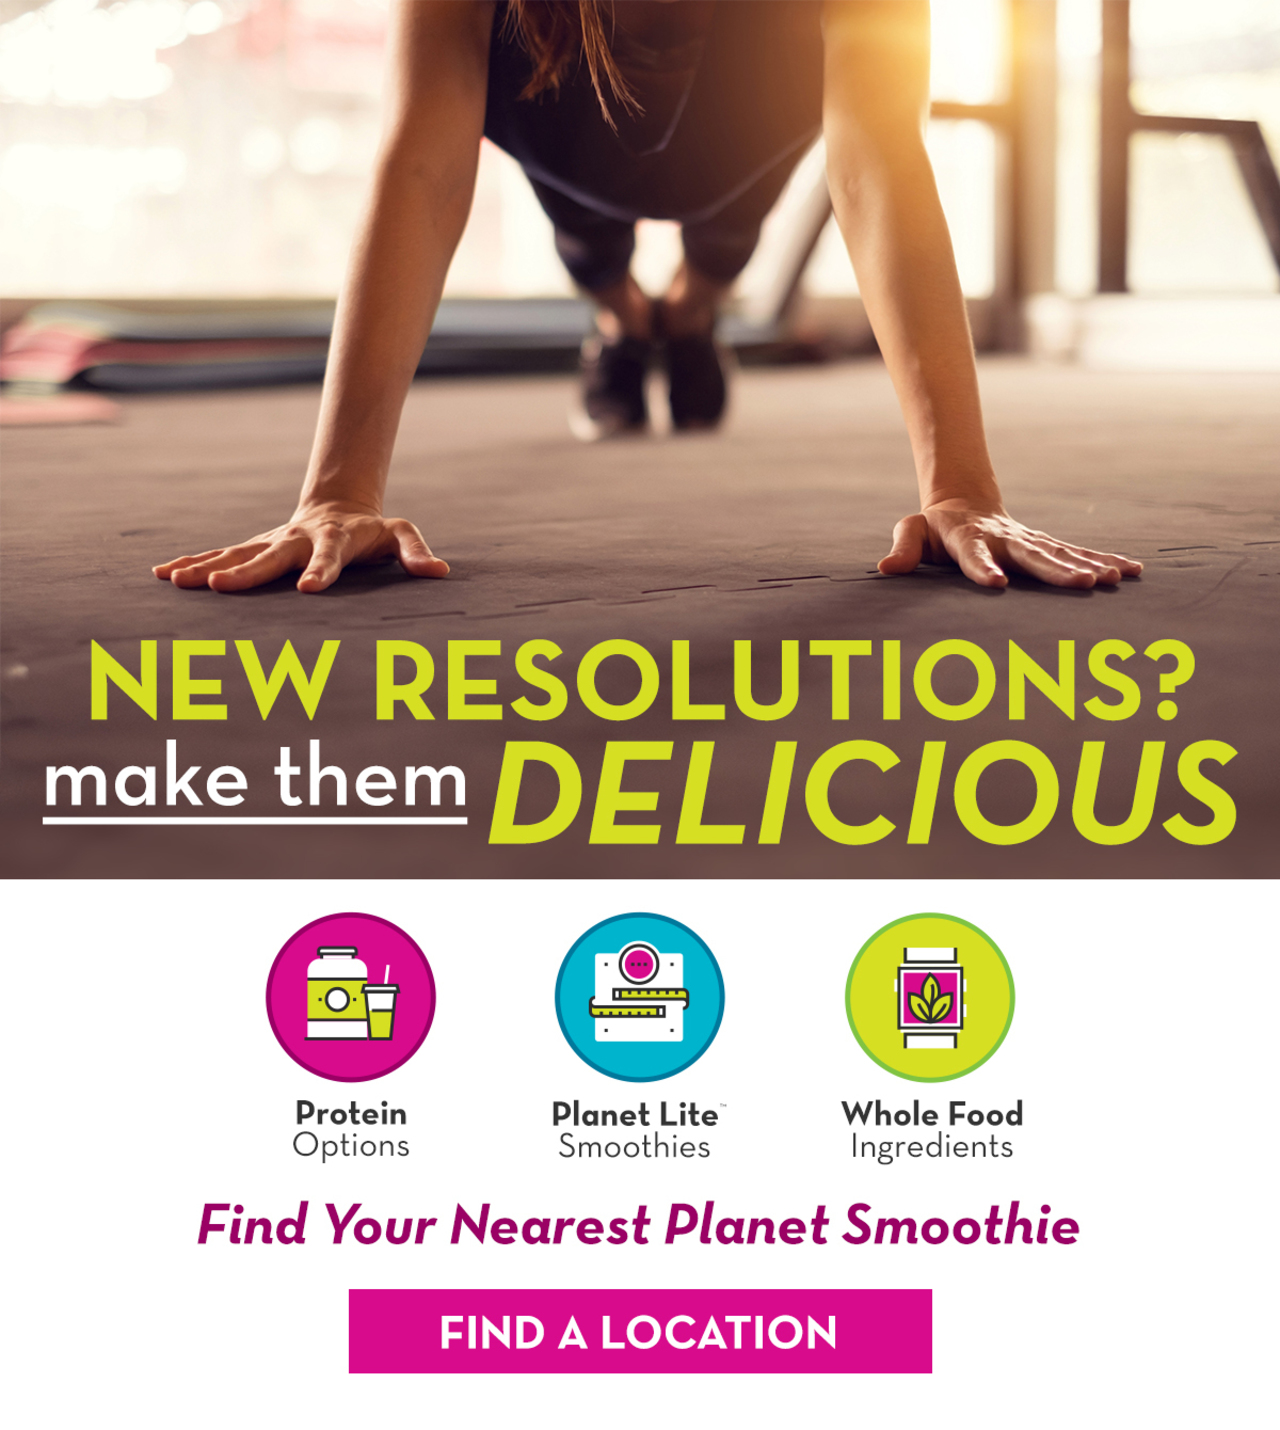 New Resolutions? Make them delicious. Protein options, Planet Lite Smoothies, Whole Food ingredients. Find your nearest Planet Smoothie.